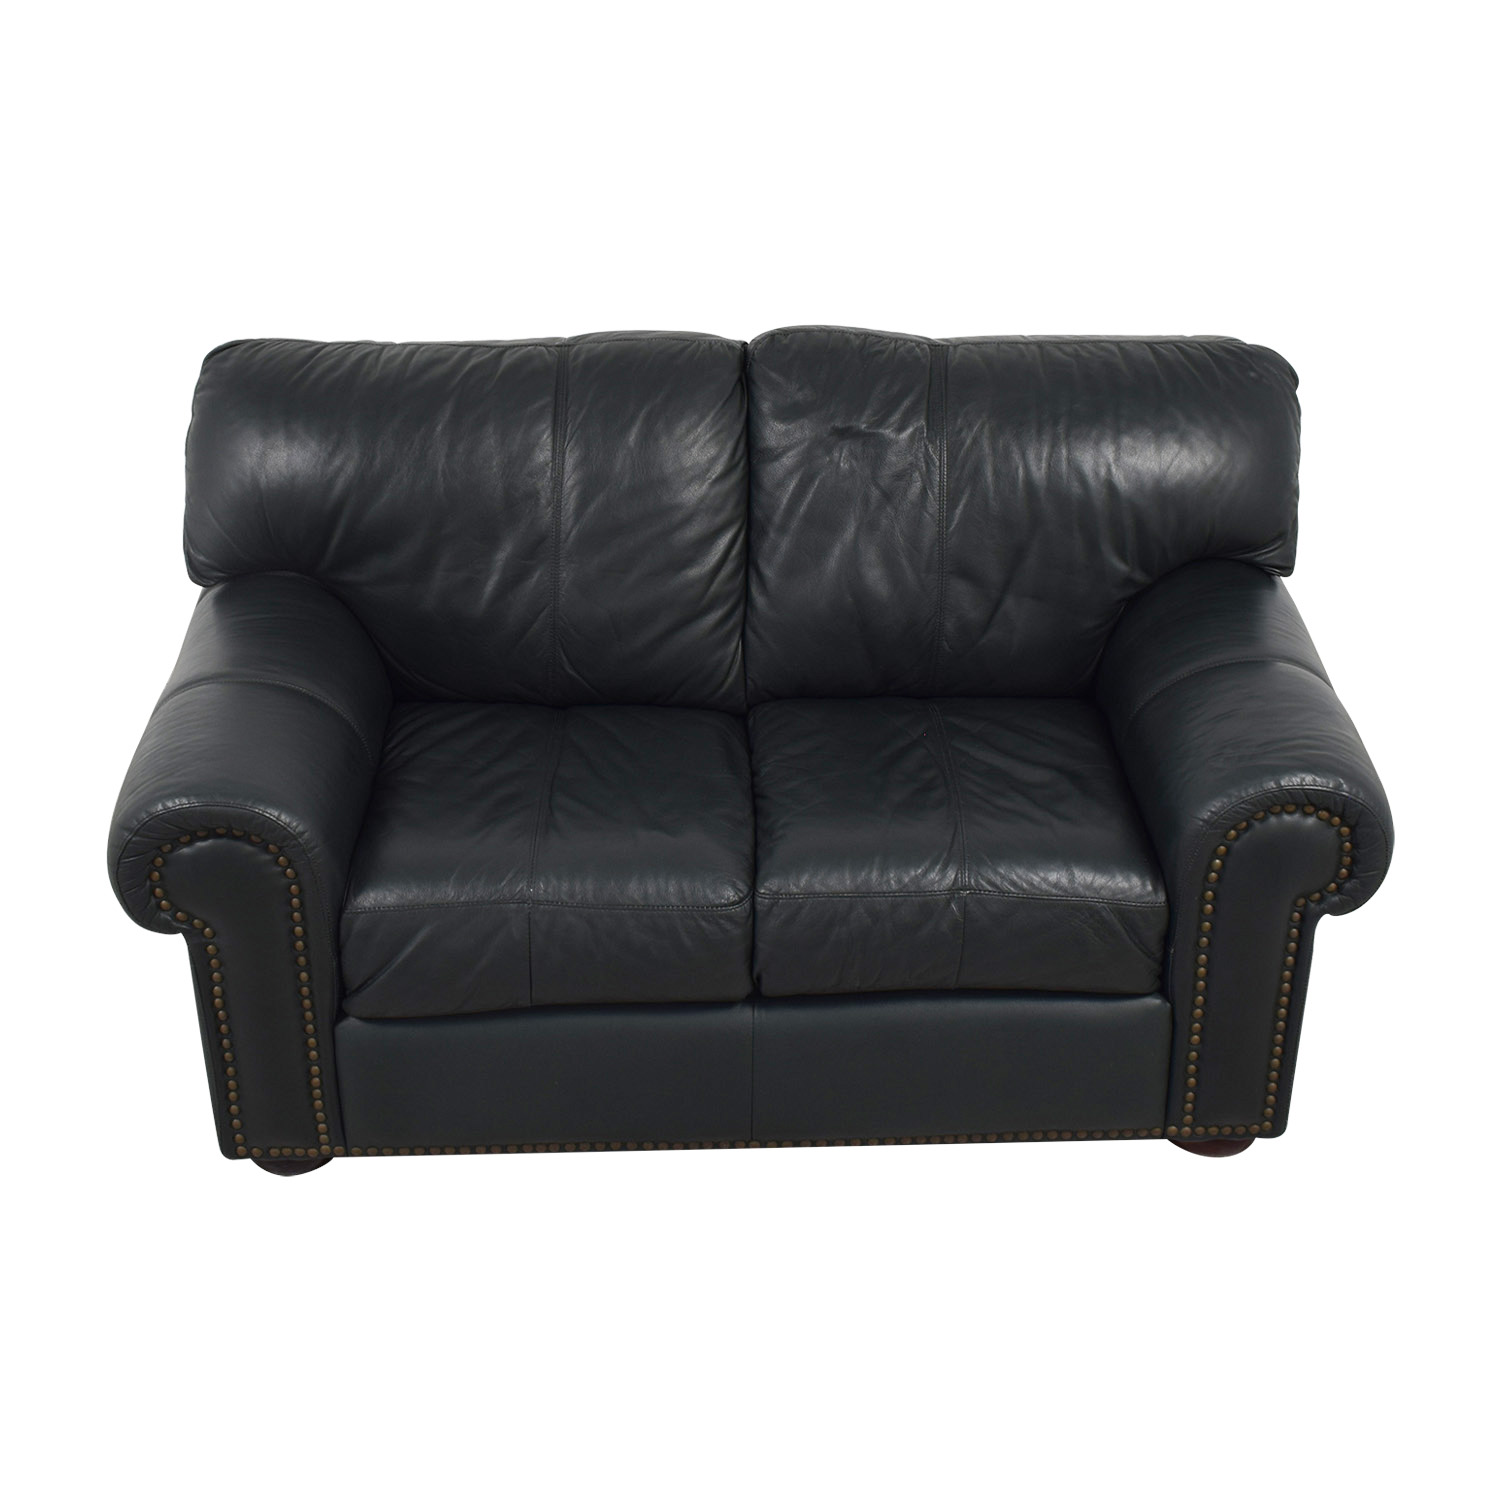 72 Off Leather Mart Leather Mart Green Leather Nailhead Loveseat